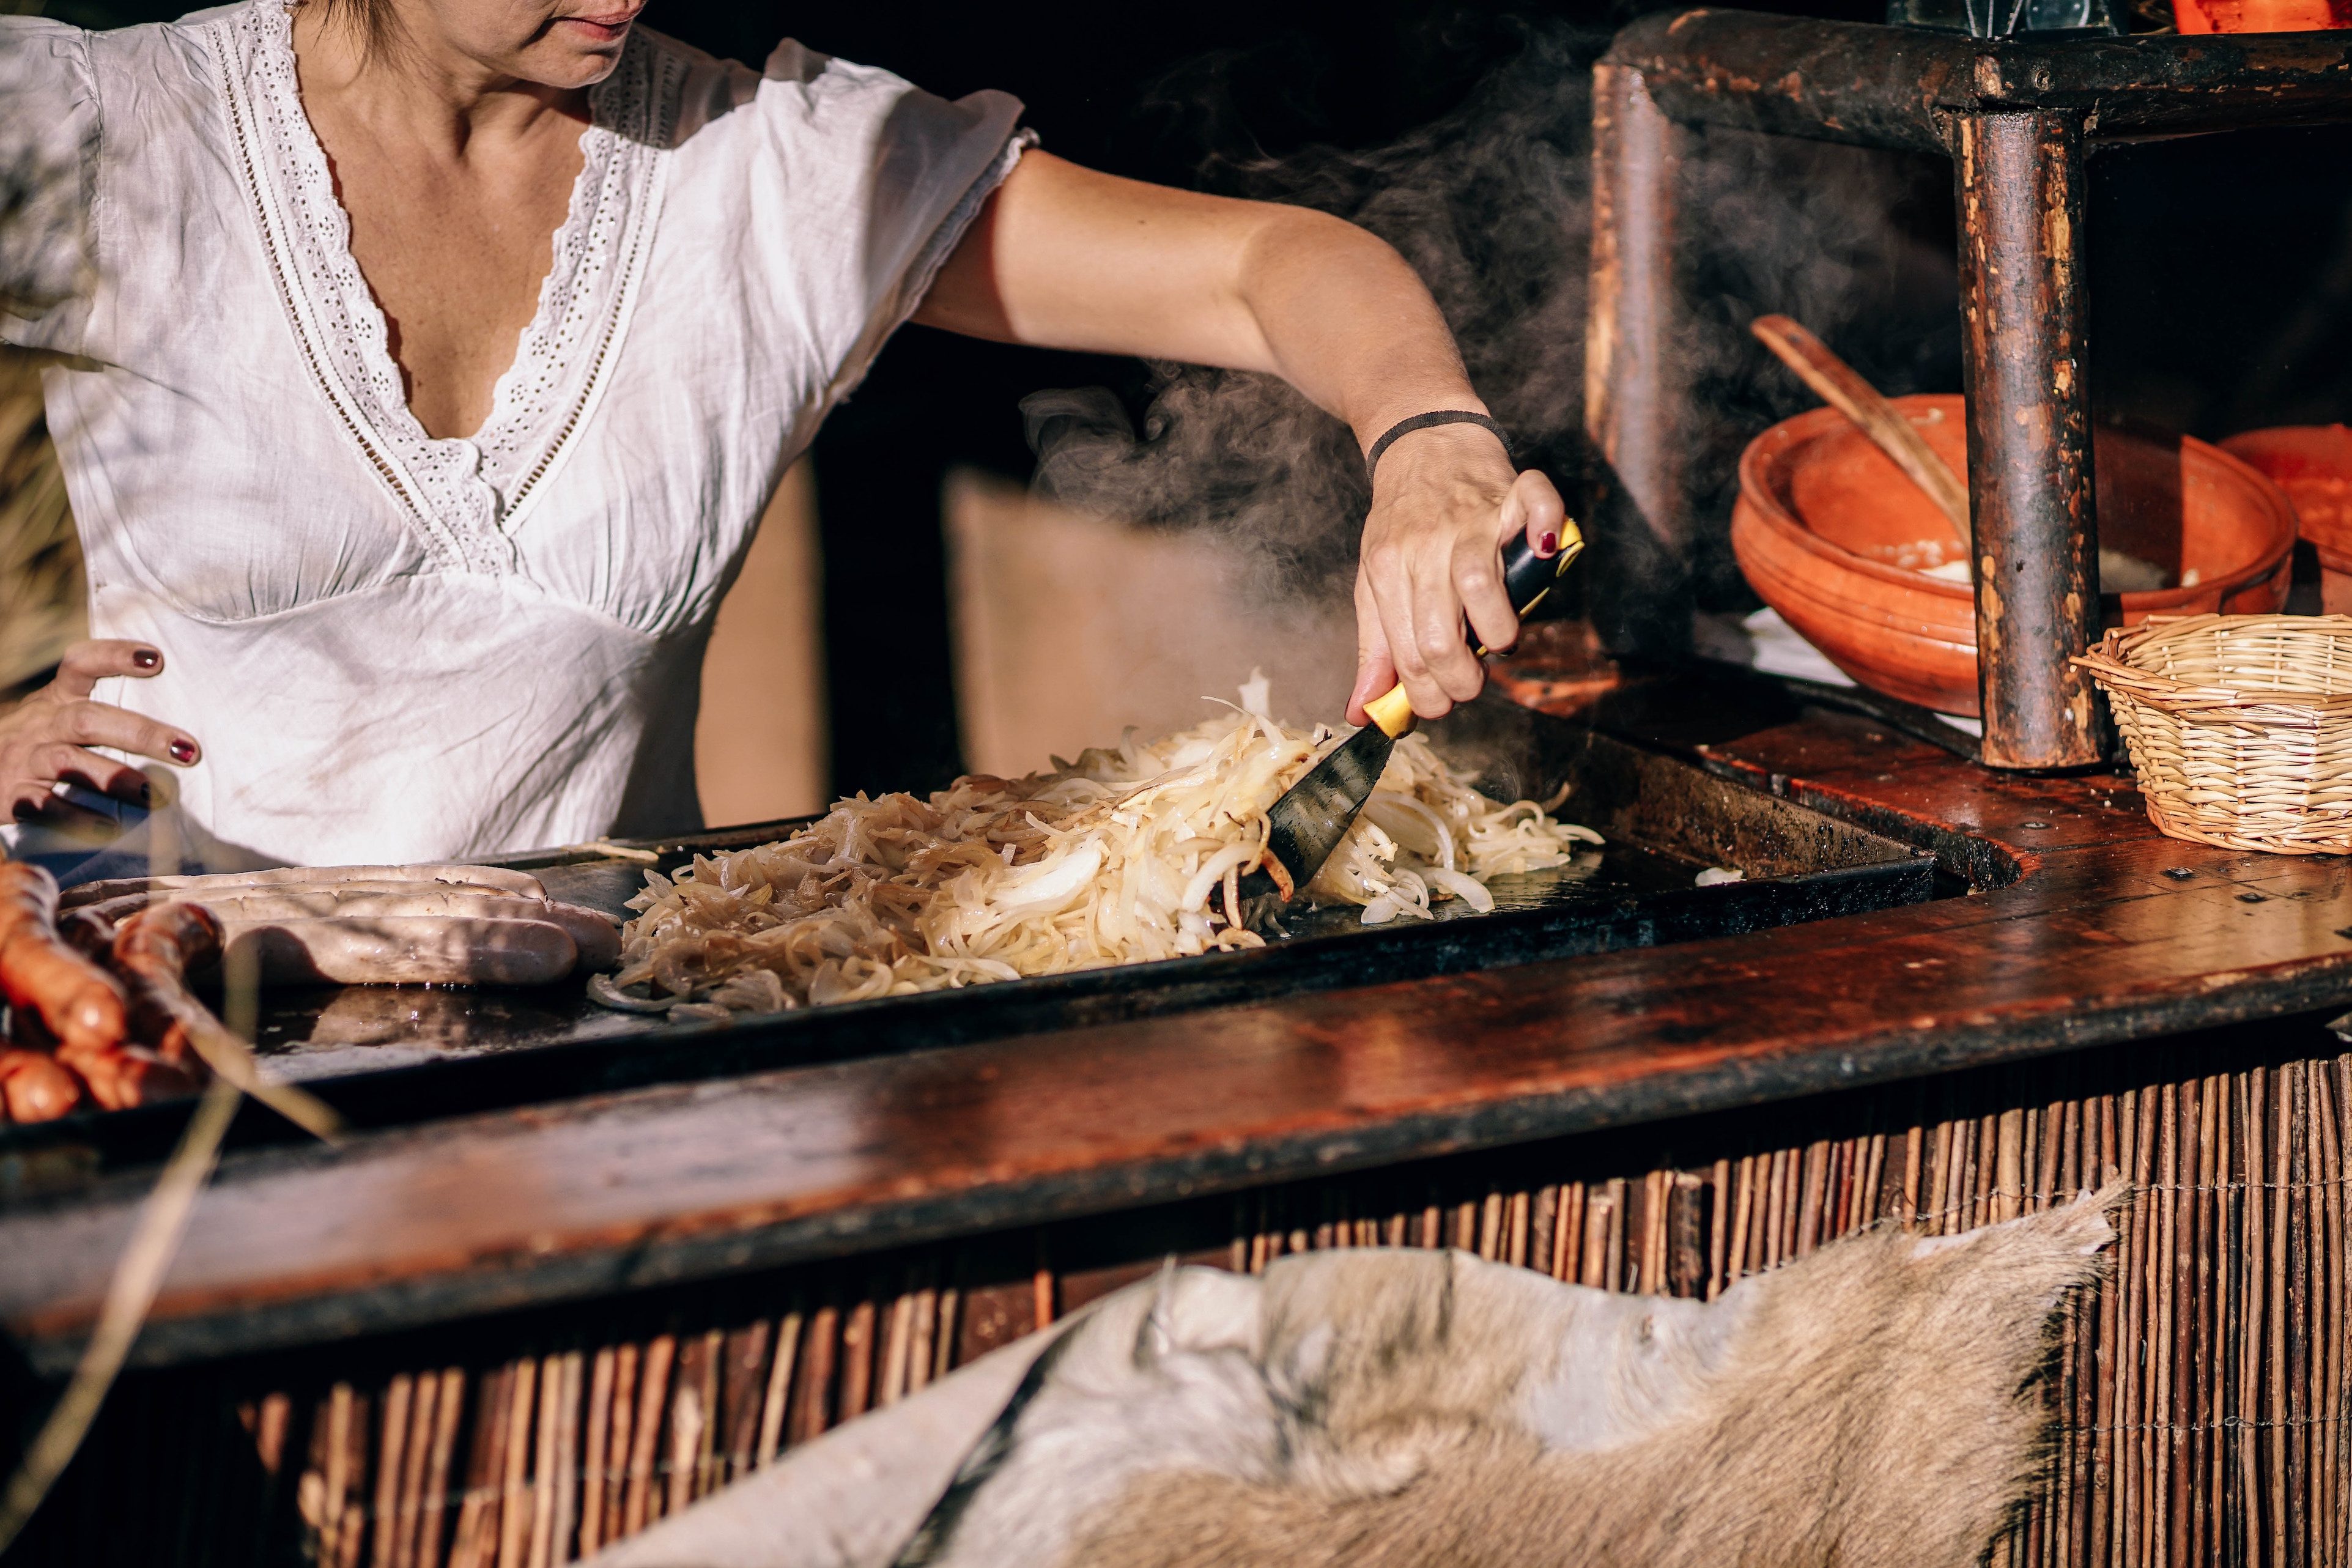 A woman cooking outside